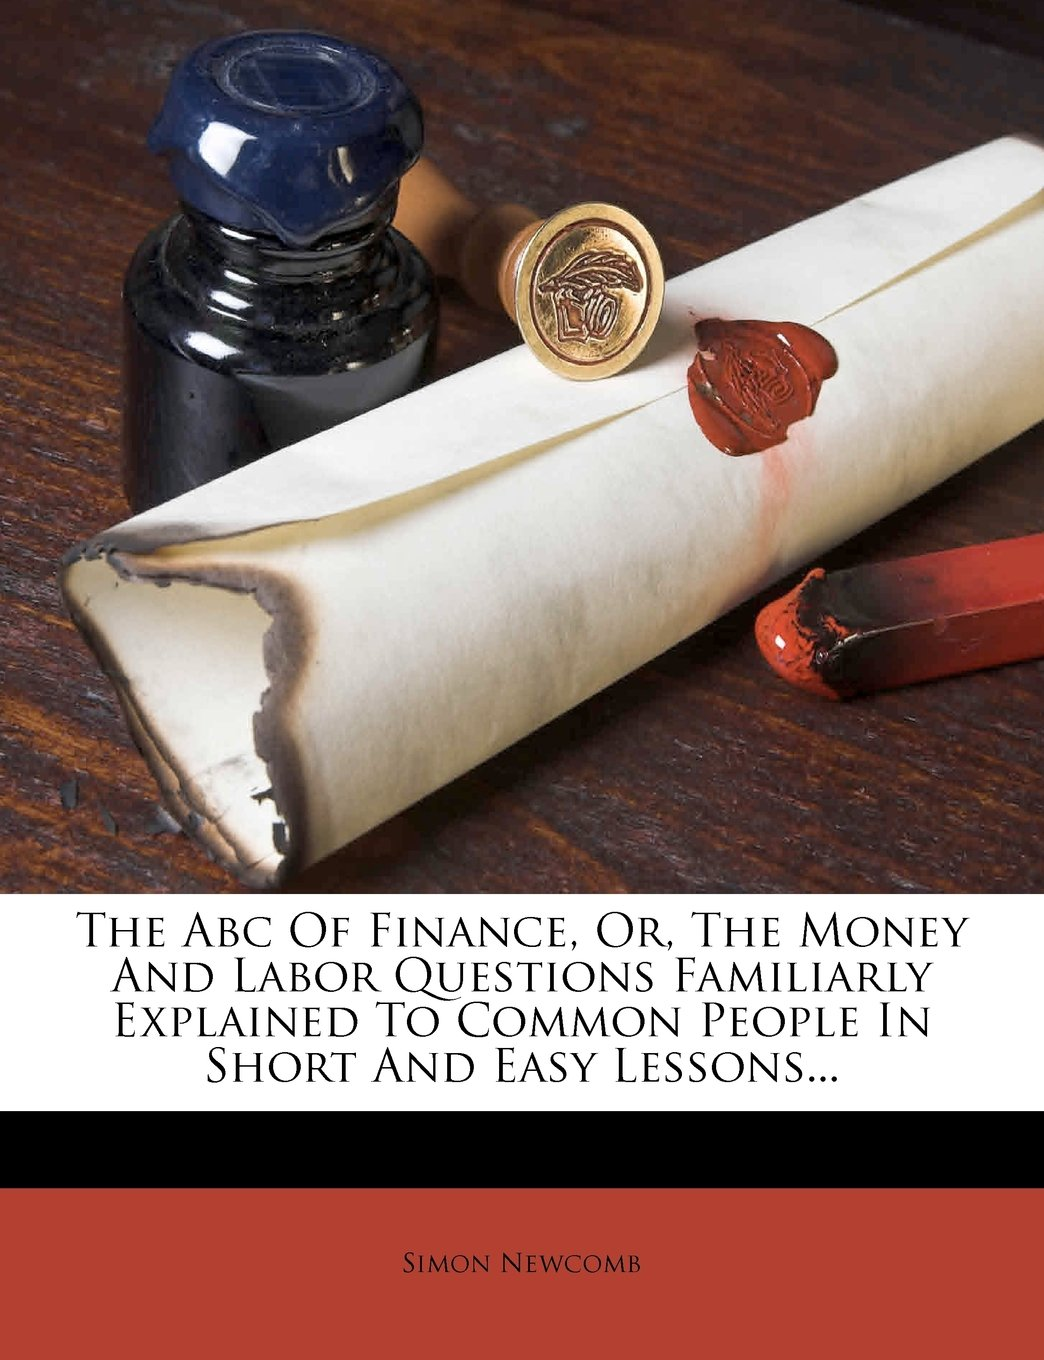 Download The Abc Of Finance, Or, The Money And Labor Questions Familiarly Explained To Common People In Short And Easy Lessons... pdf epub